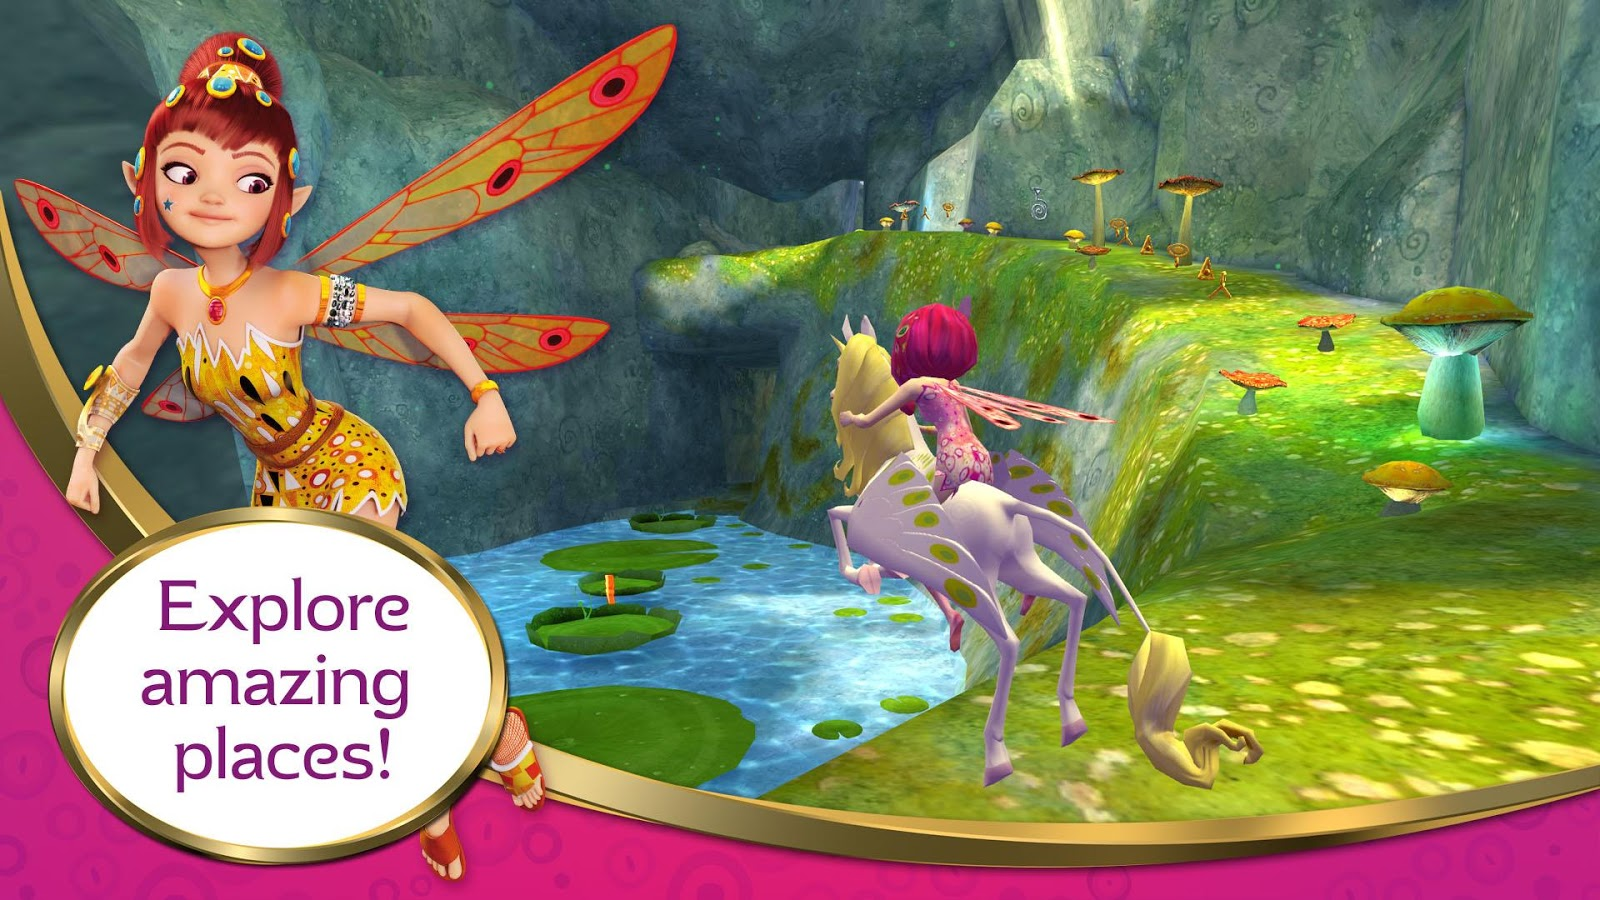 mia and me free the unicorns android apps on google play